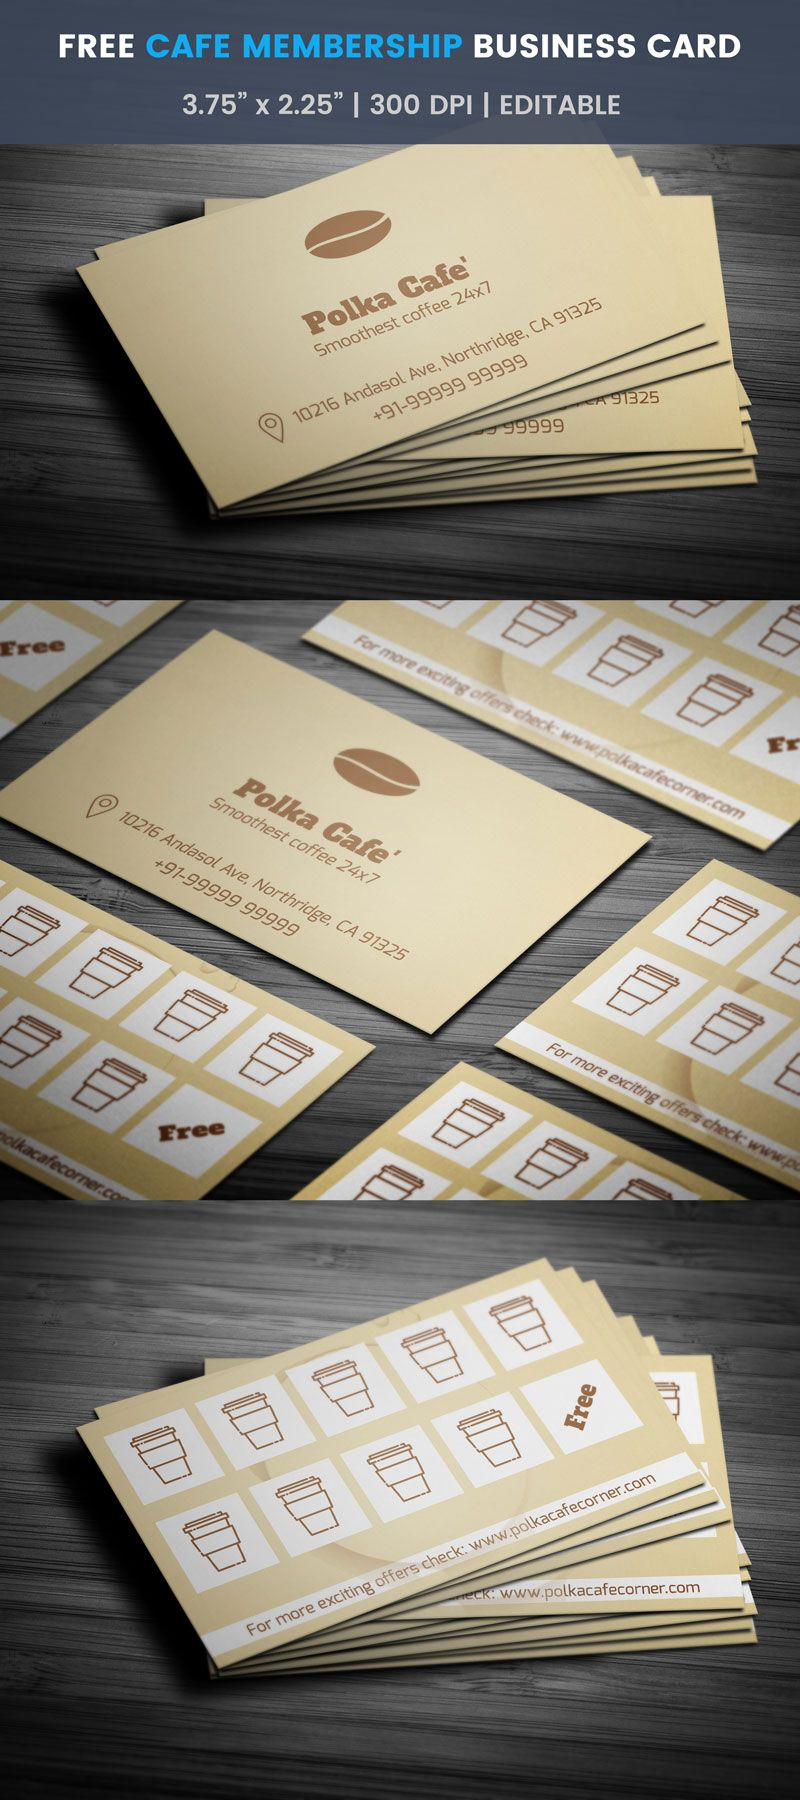 Cafe Membership Business Card Full Preview Free Business Card